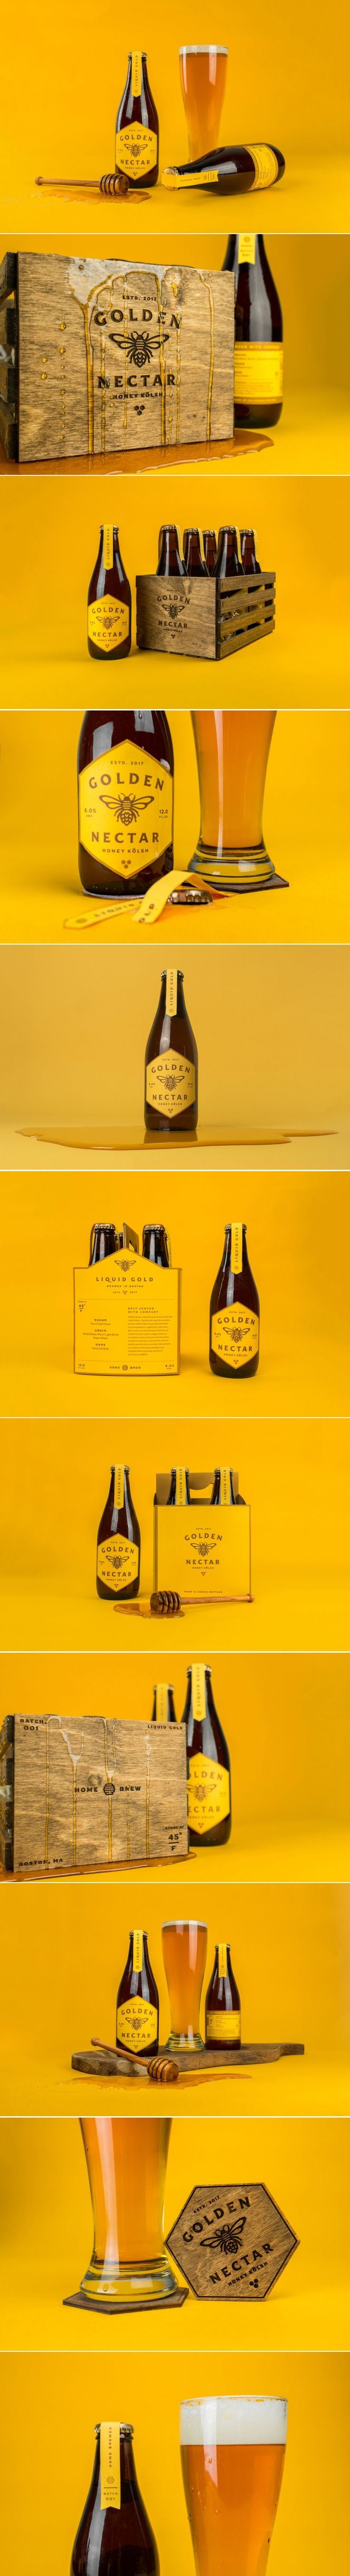 Beat The Winter Blues With This Bright Beer Packaging — The Dieline | Packaging & Branding Design & Innovation News